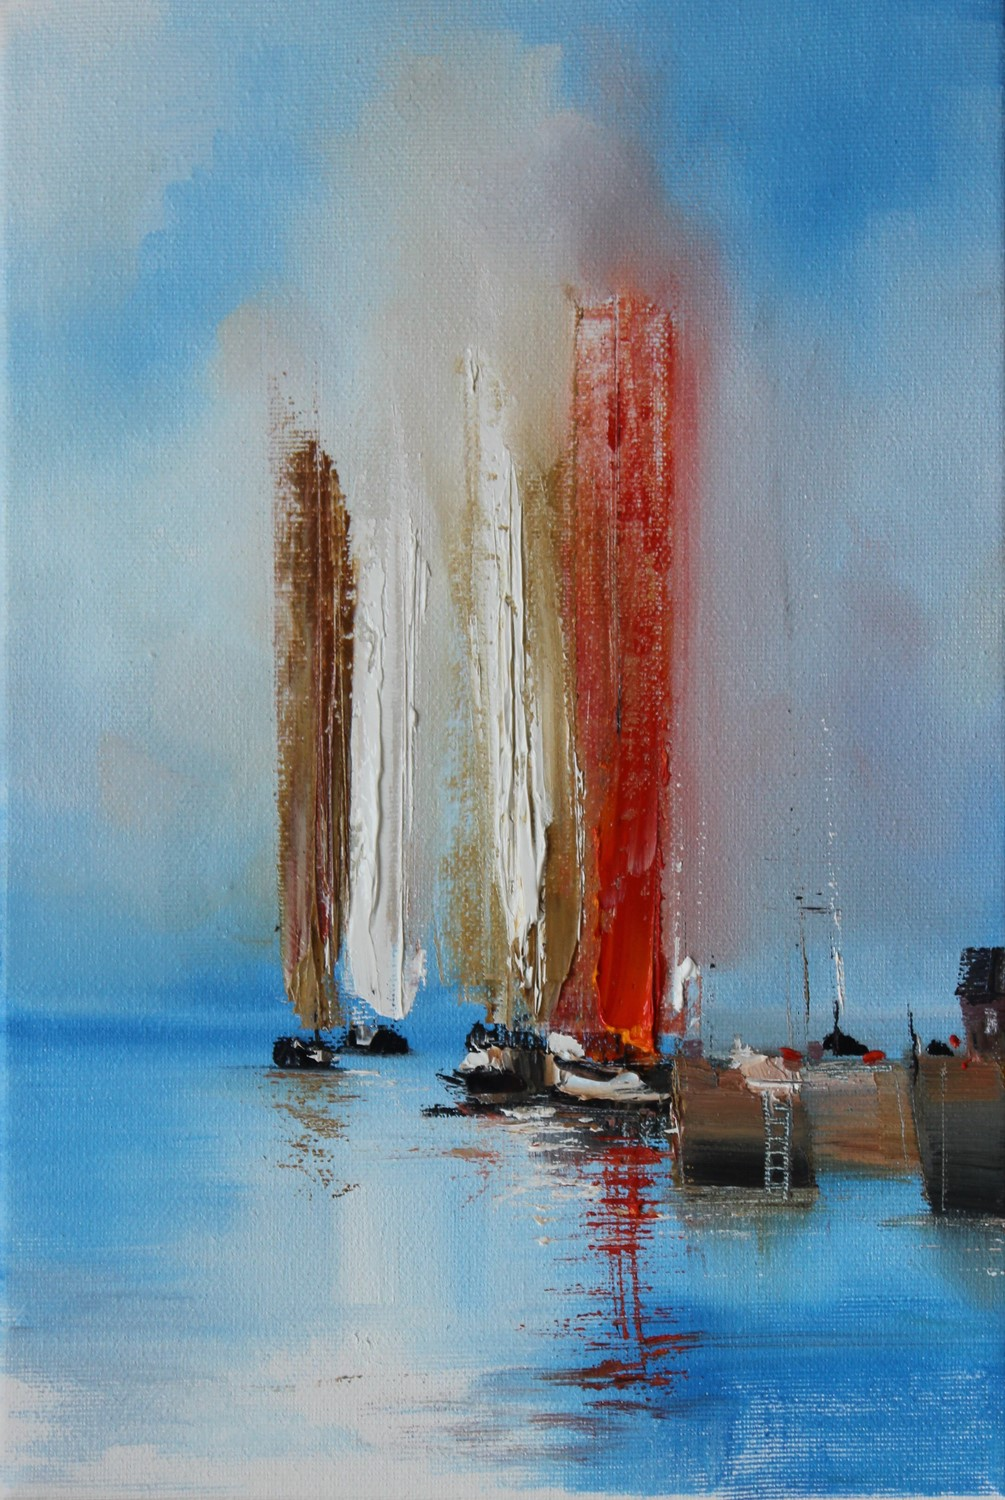 'Coming to port ' by artist Rosanne Barr